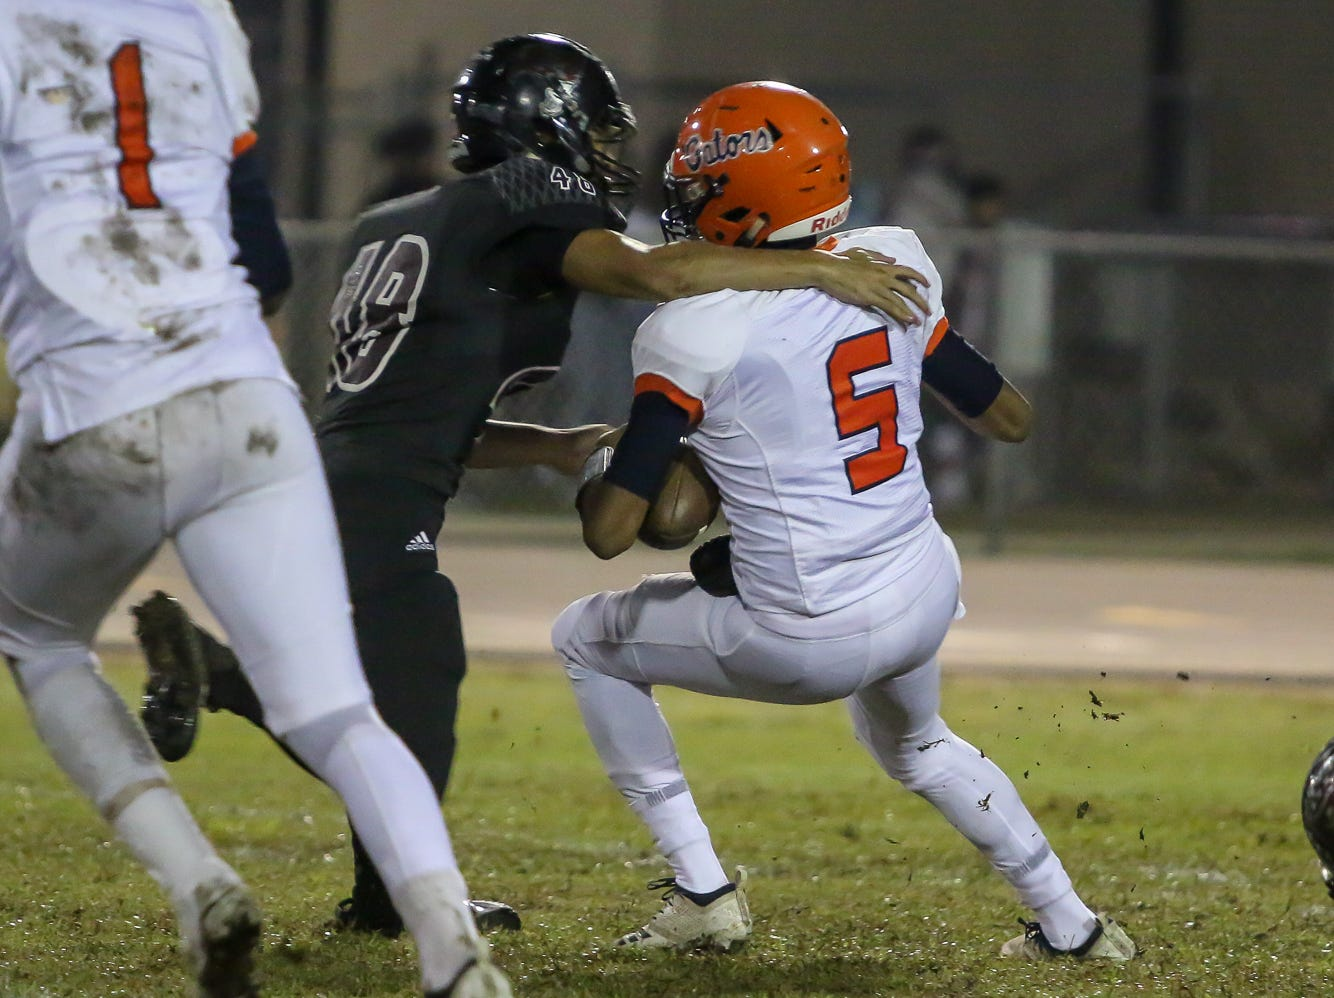 Navarre's Isaiah Heyward (48) sacks Escambia quarterback AV Smith (5) in the Region 1-6A Semifinal game at Navarre High School on Friday, November 16, 2018.